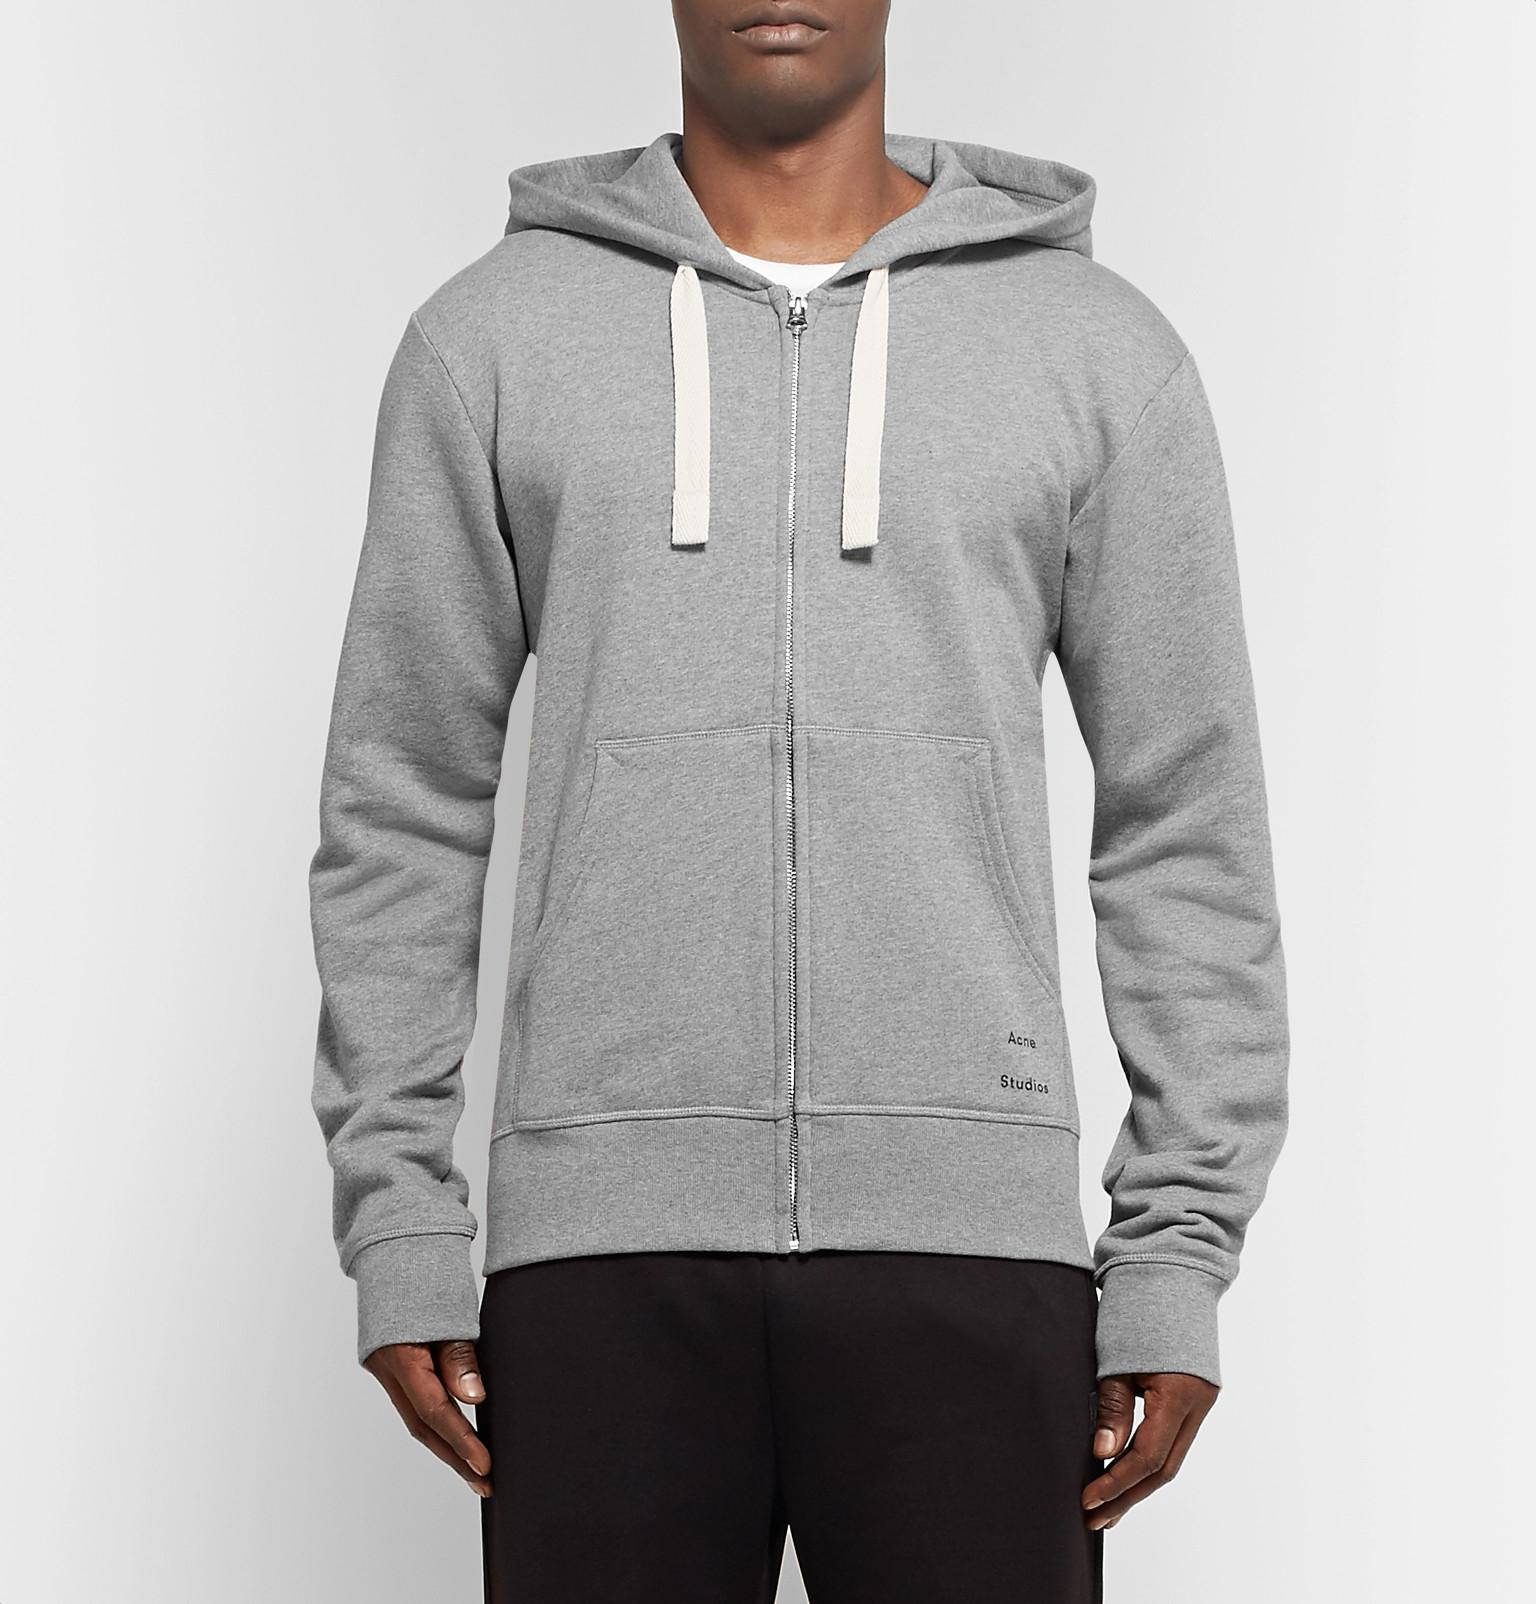 fddbfe33e7 Acne - Gray Frake Slim-fit Mélange Loopback Cotton-jersey Zip-up Hoodie.  View fullscreen